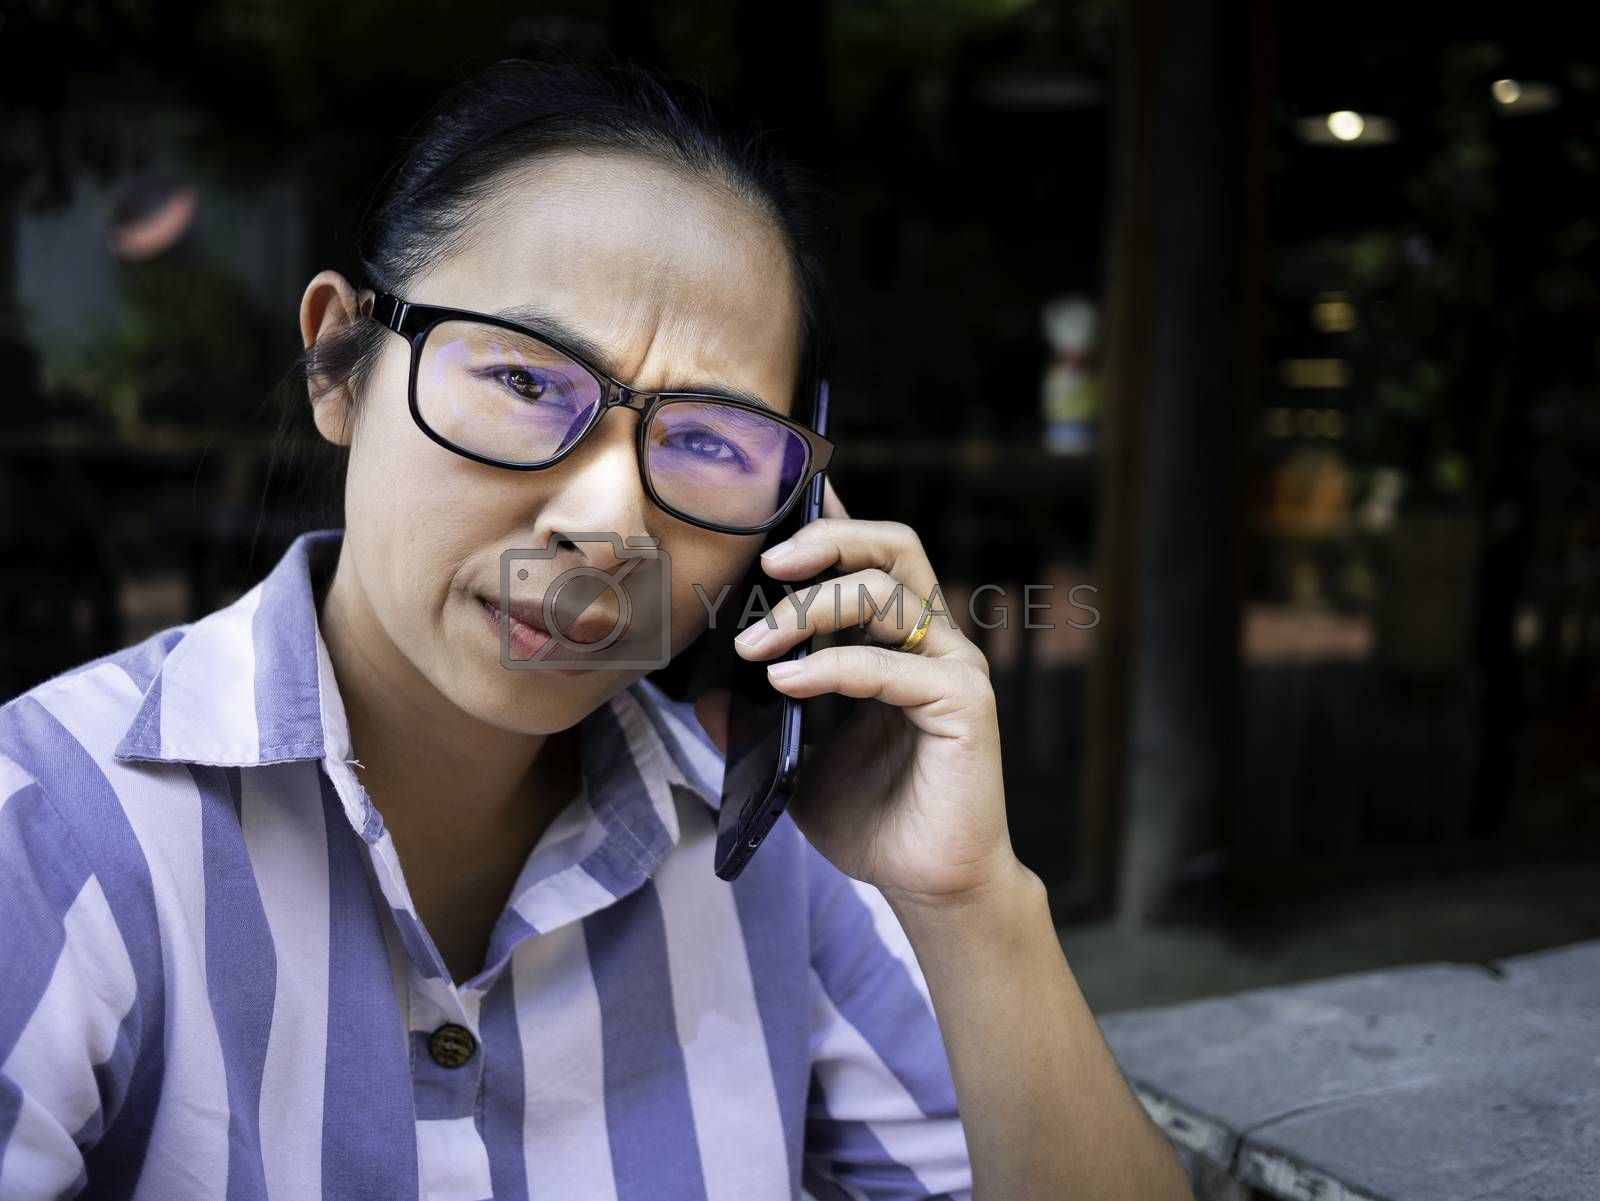 Stressed Asian young woman talking on the phone at coffee cafe. by TEERASAK